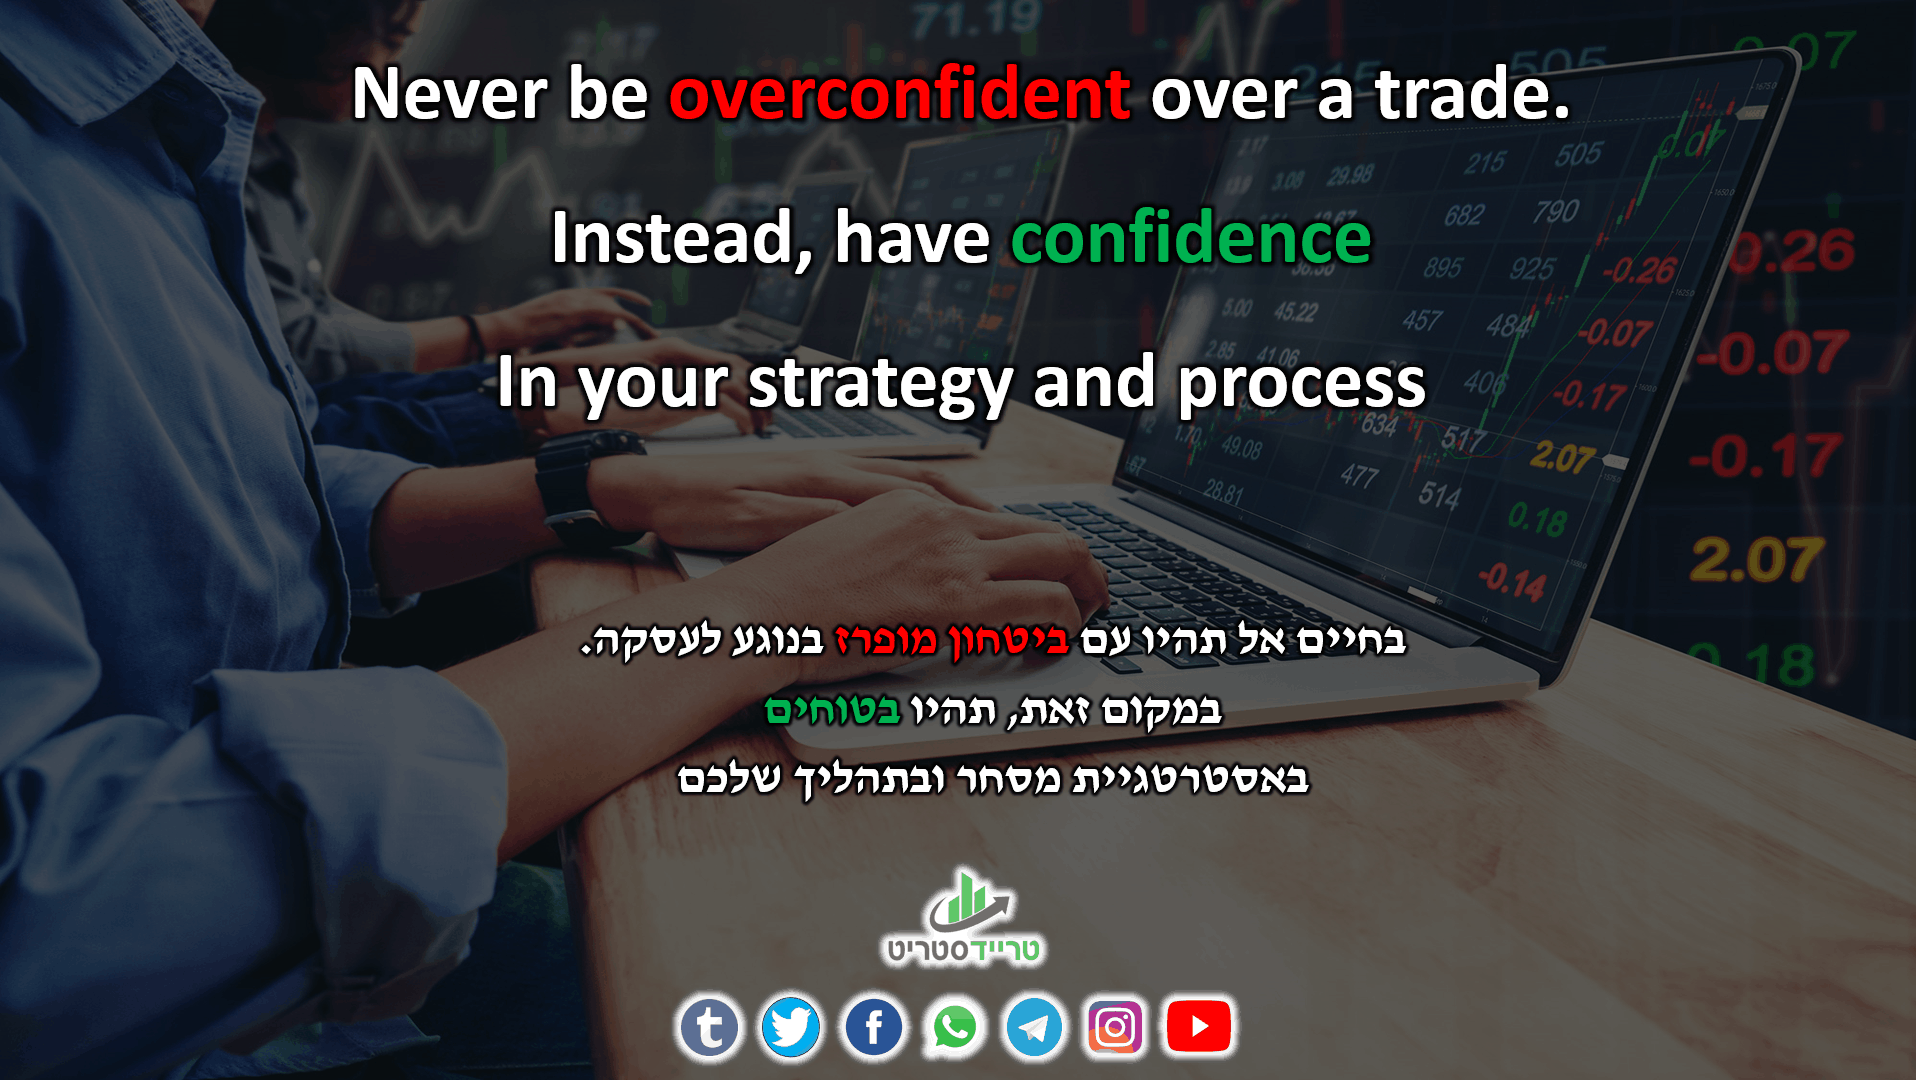 Never be overconfident over a trade. Instead, have confidence